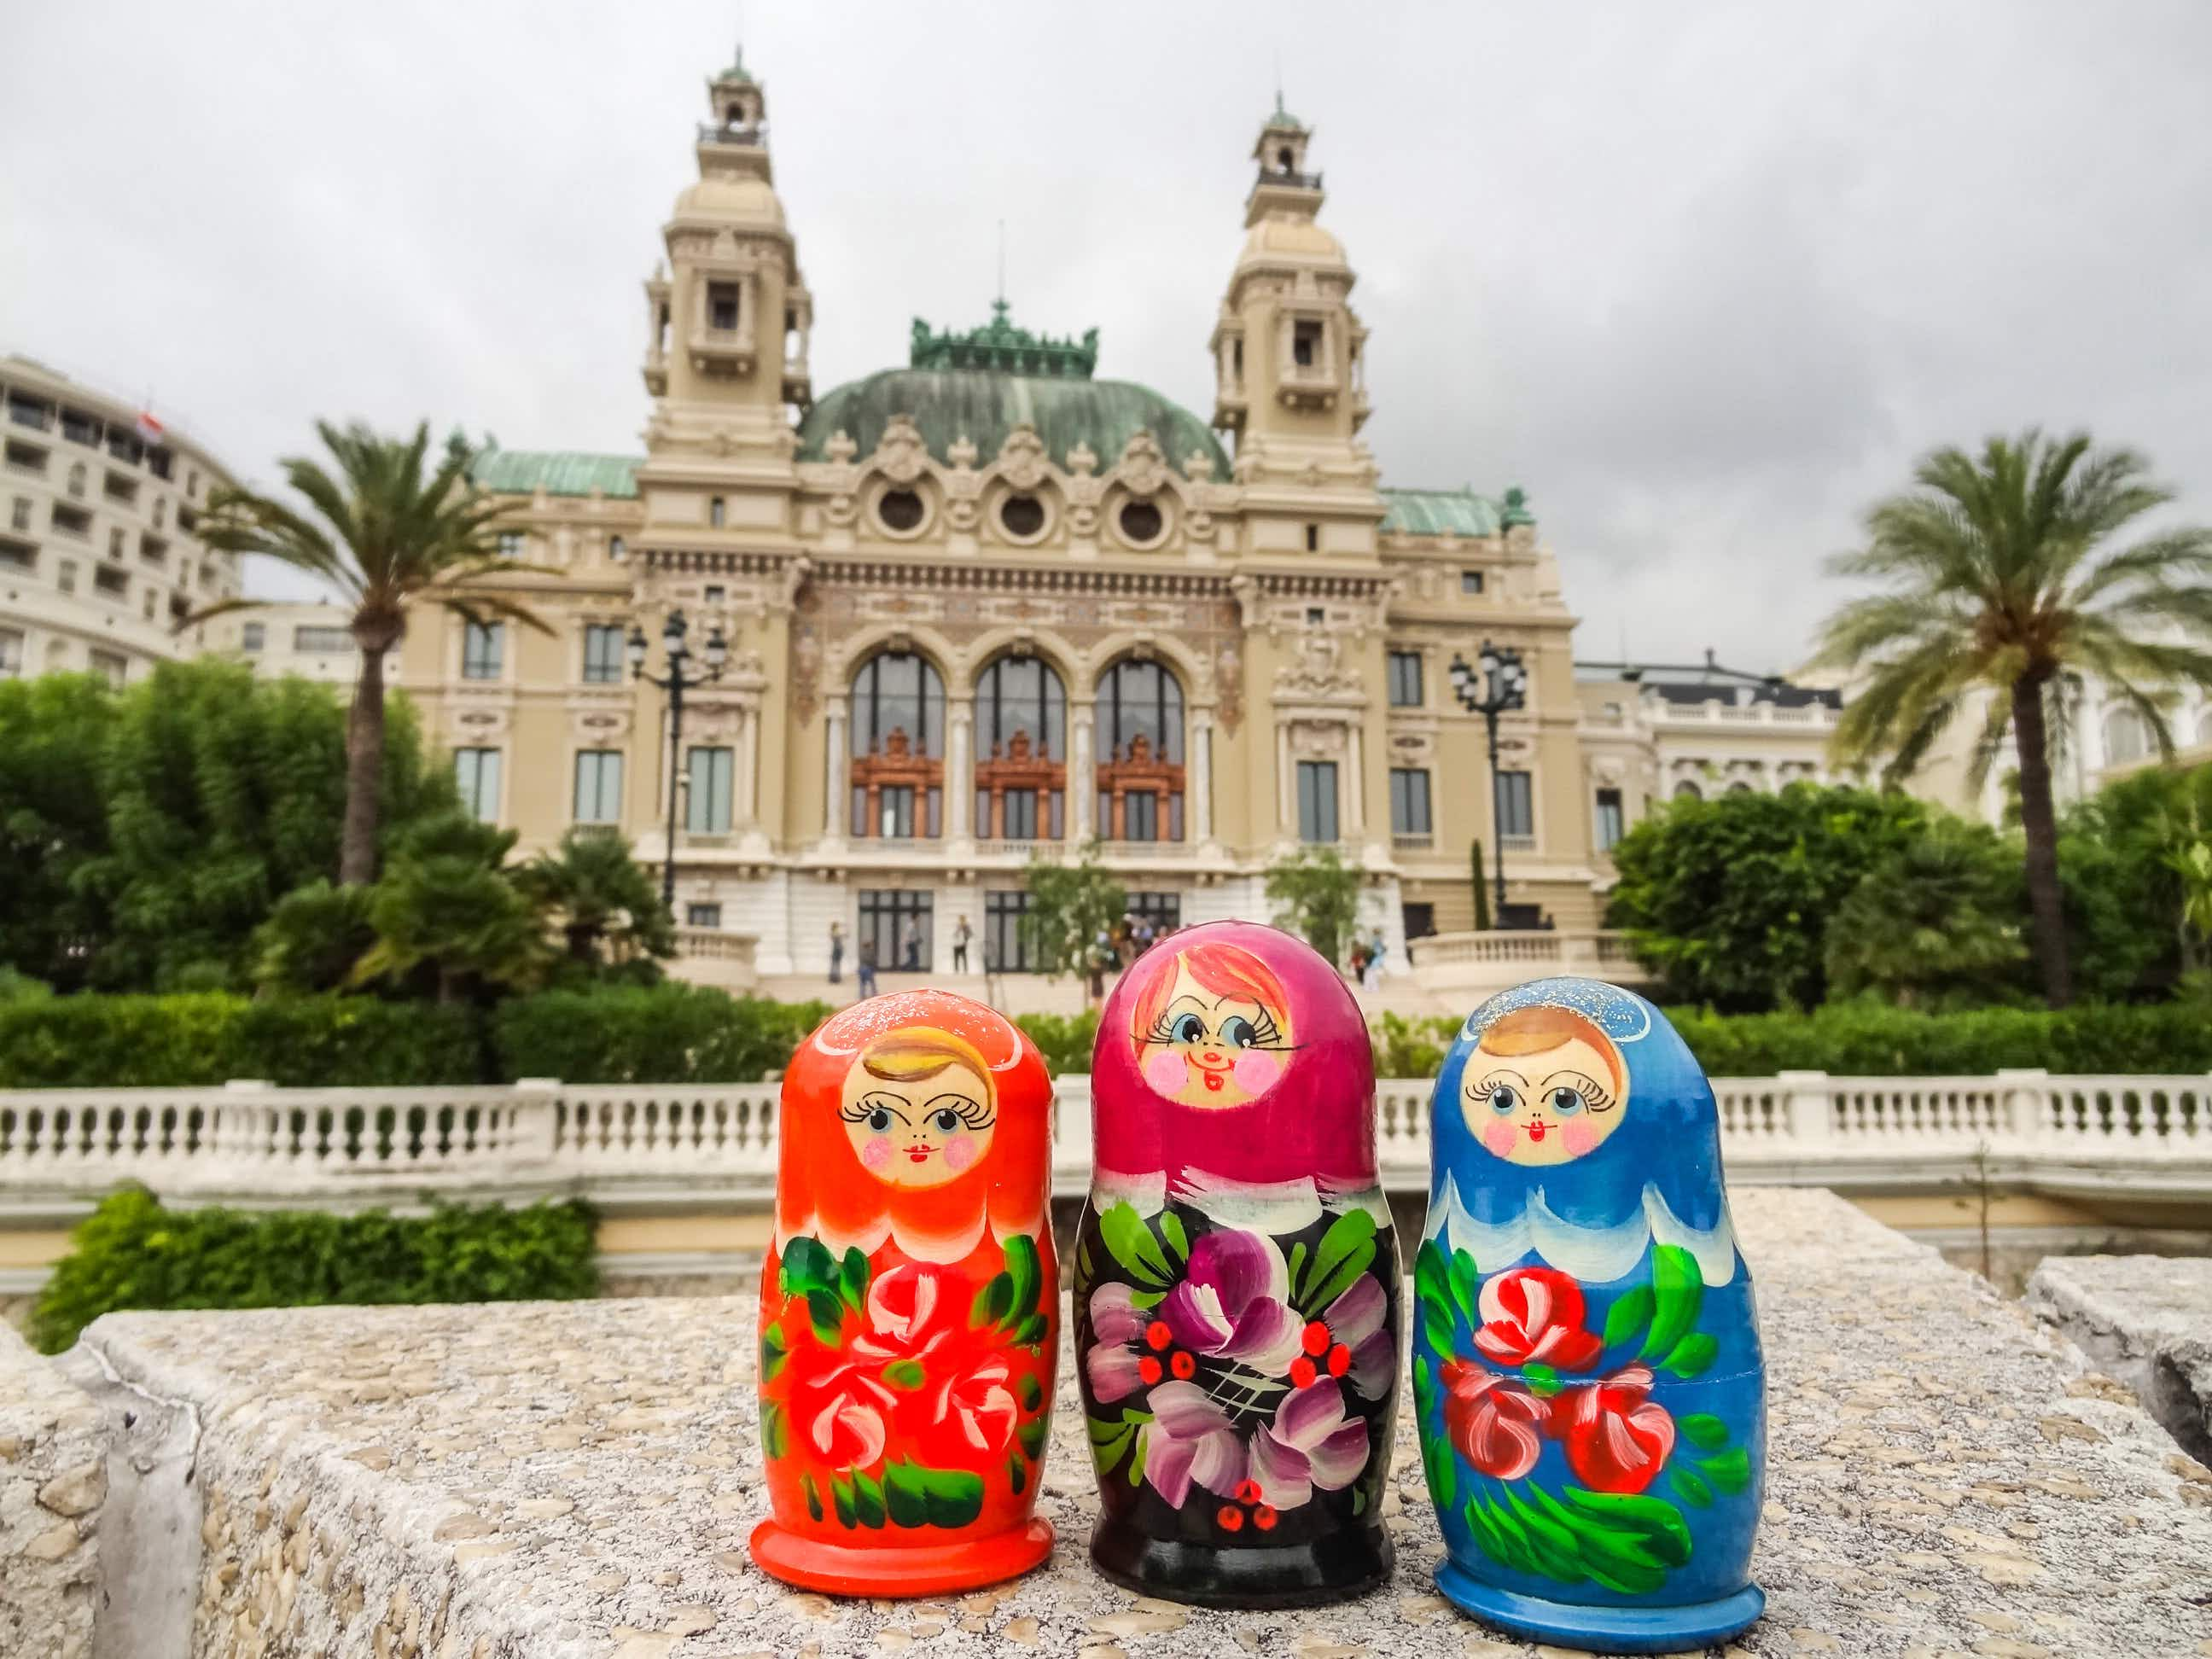 A traveller photographed Russian nesting dolls in every country she visited in the world